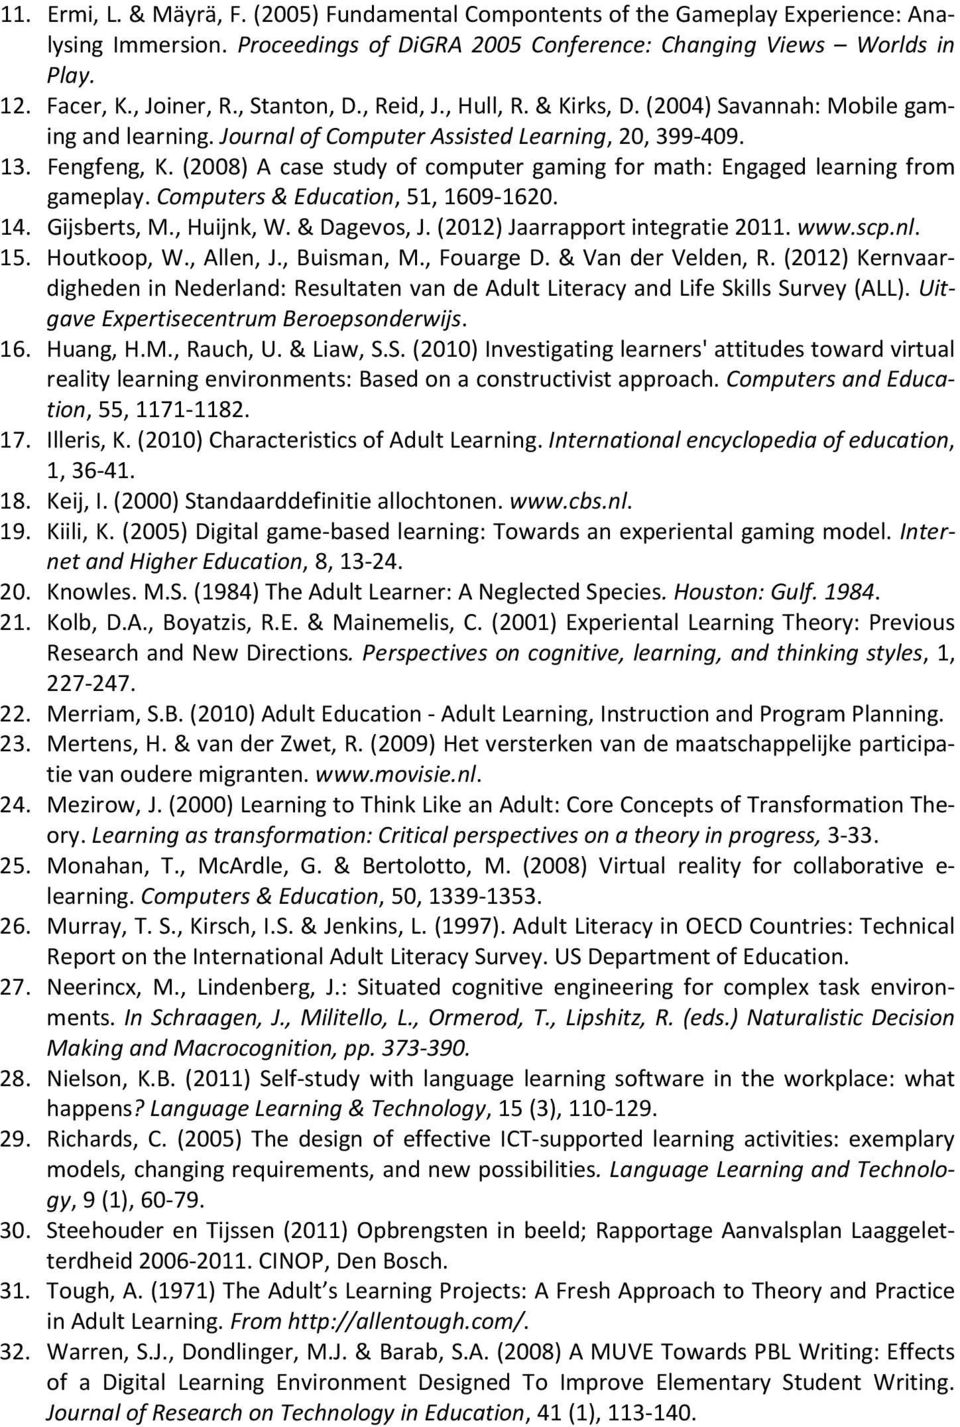 (2008) A case study of computer gaming for math: Engaged learning from gameplay. Computers & Education, 51, 1609-1620. 14. Gijsberts, M., Huijnk, W. & Dagevos, J. (2012) Jaarrapport integratie 2011.